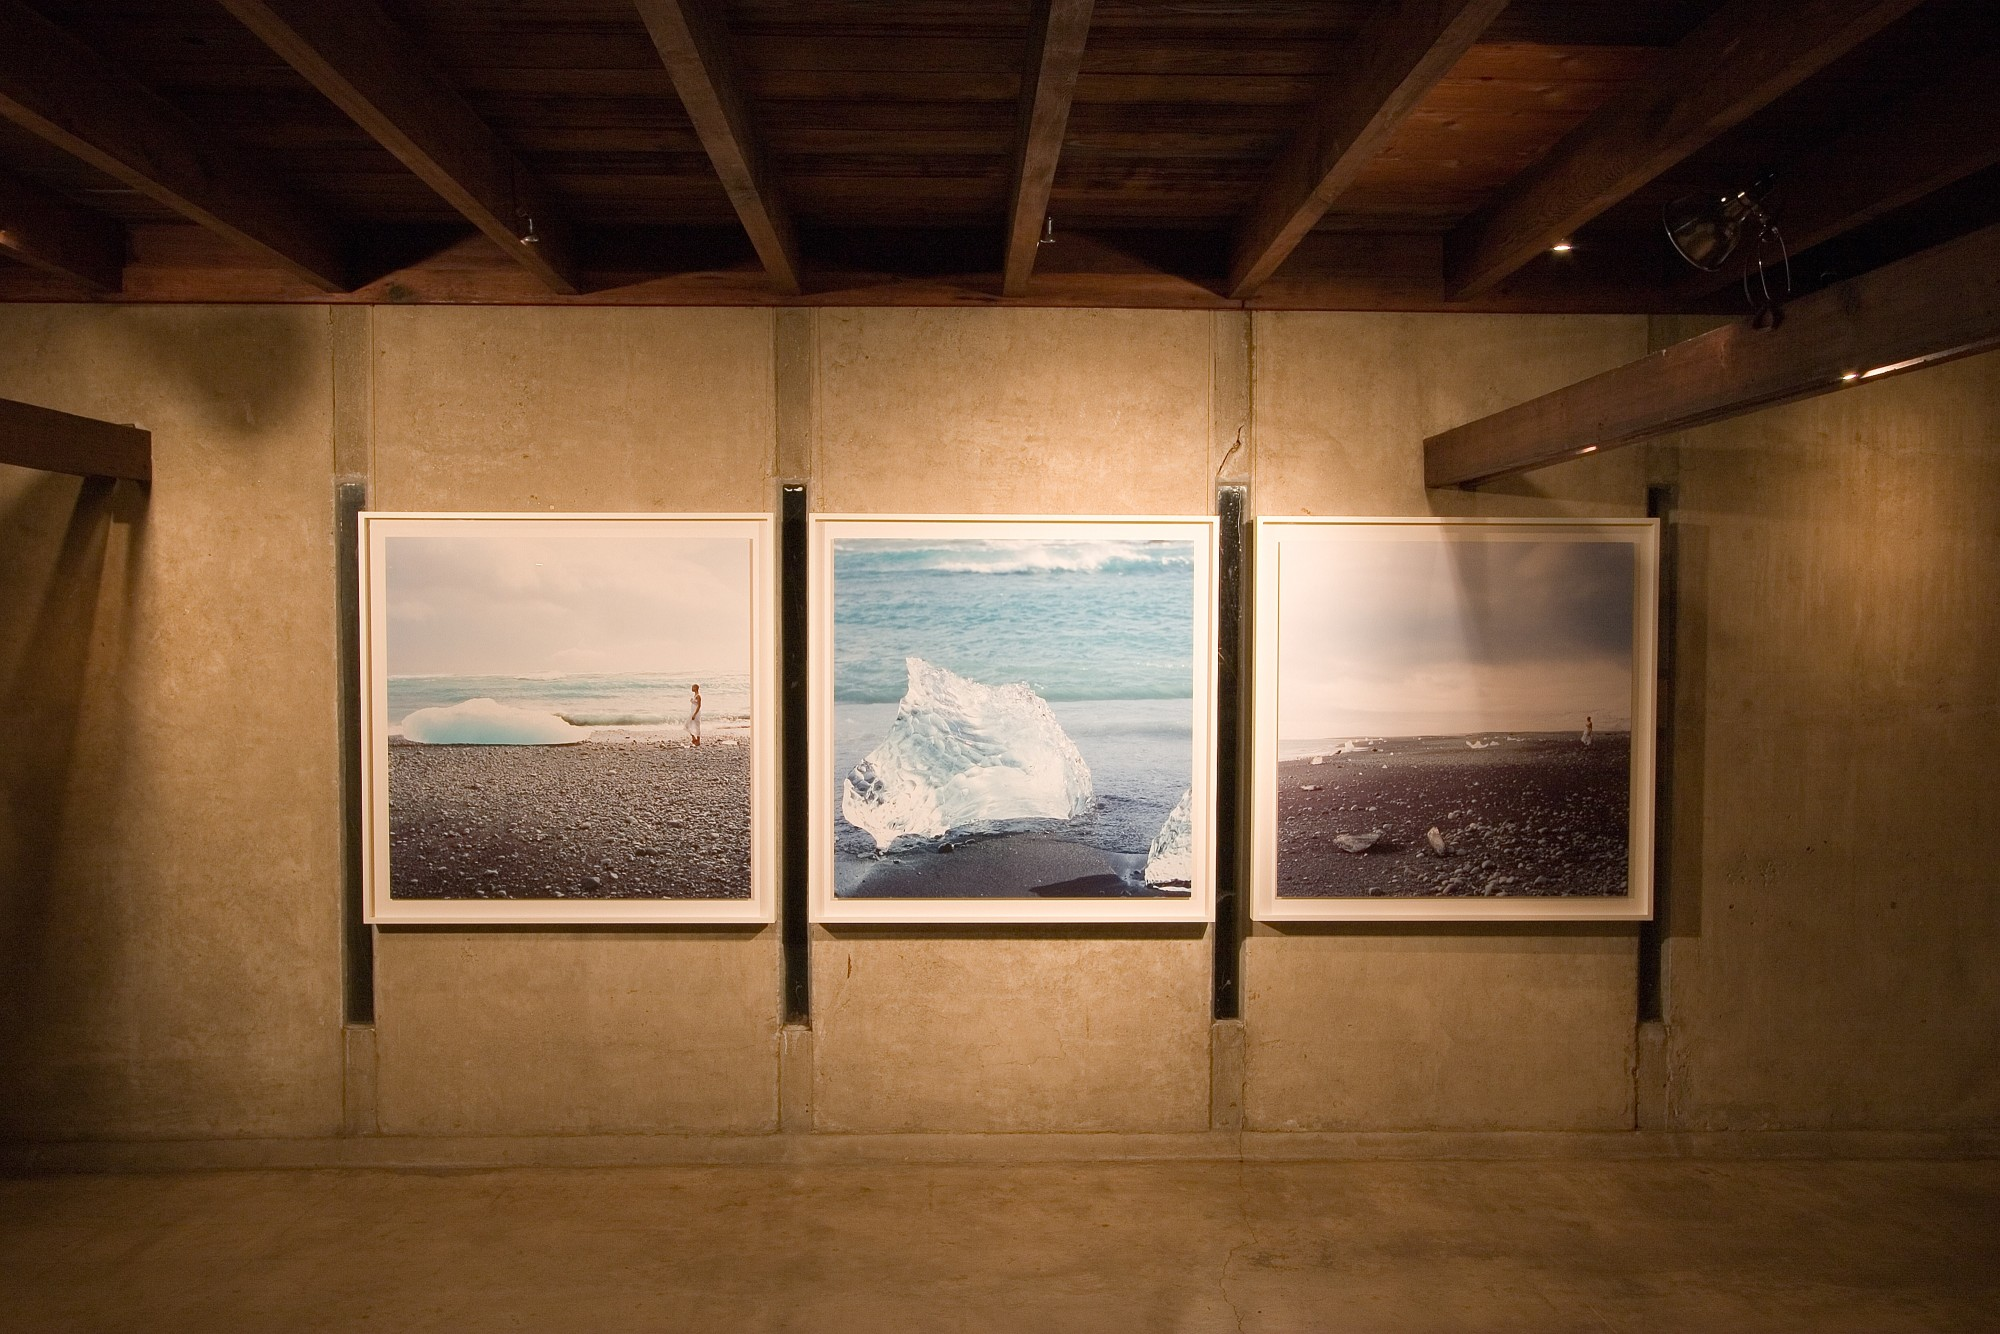 Isaac Julien: True North. MAK Center for Art and Architecture, West Hollywood, 2005